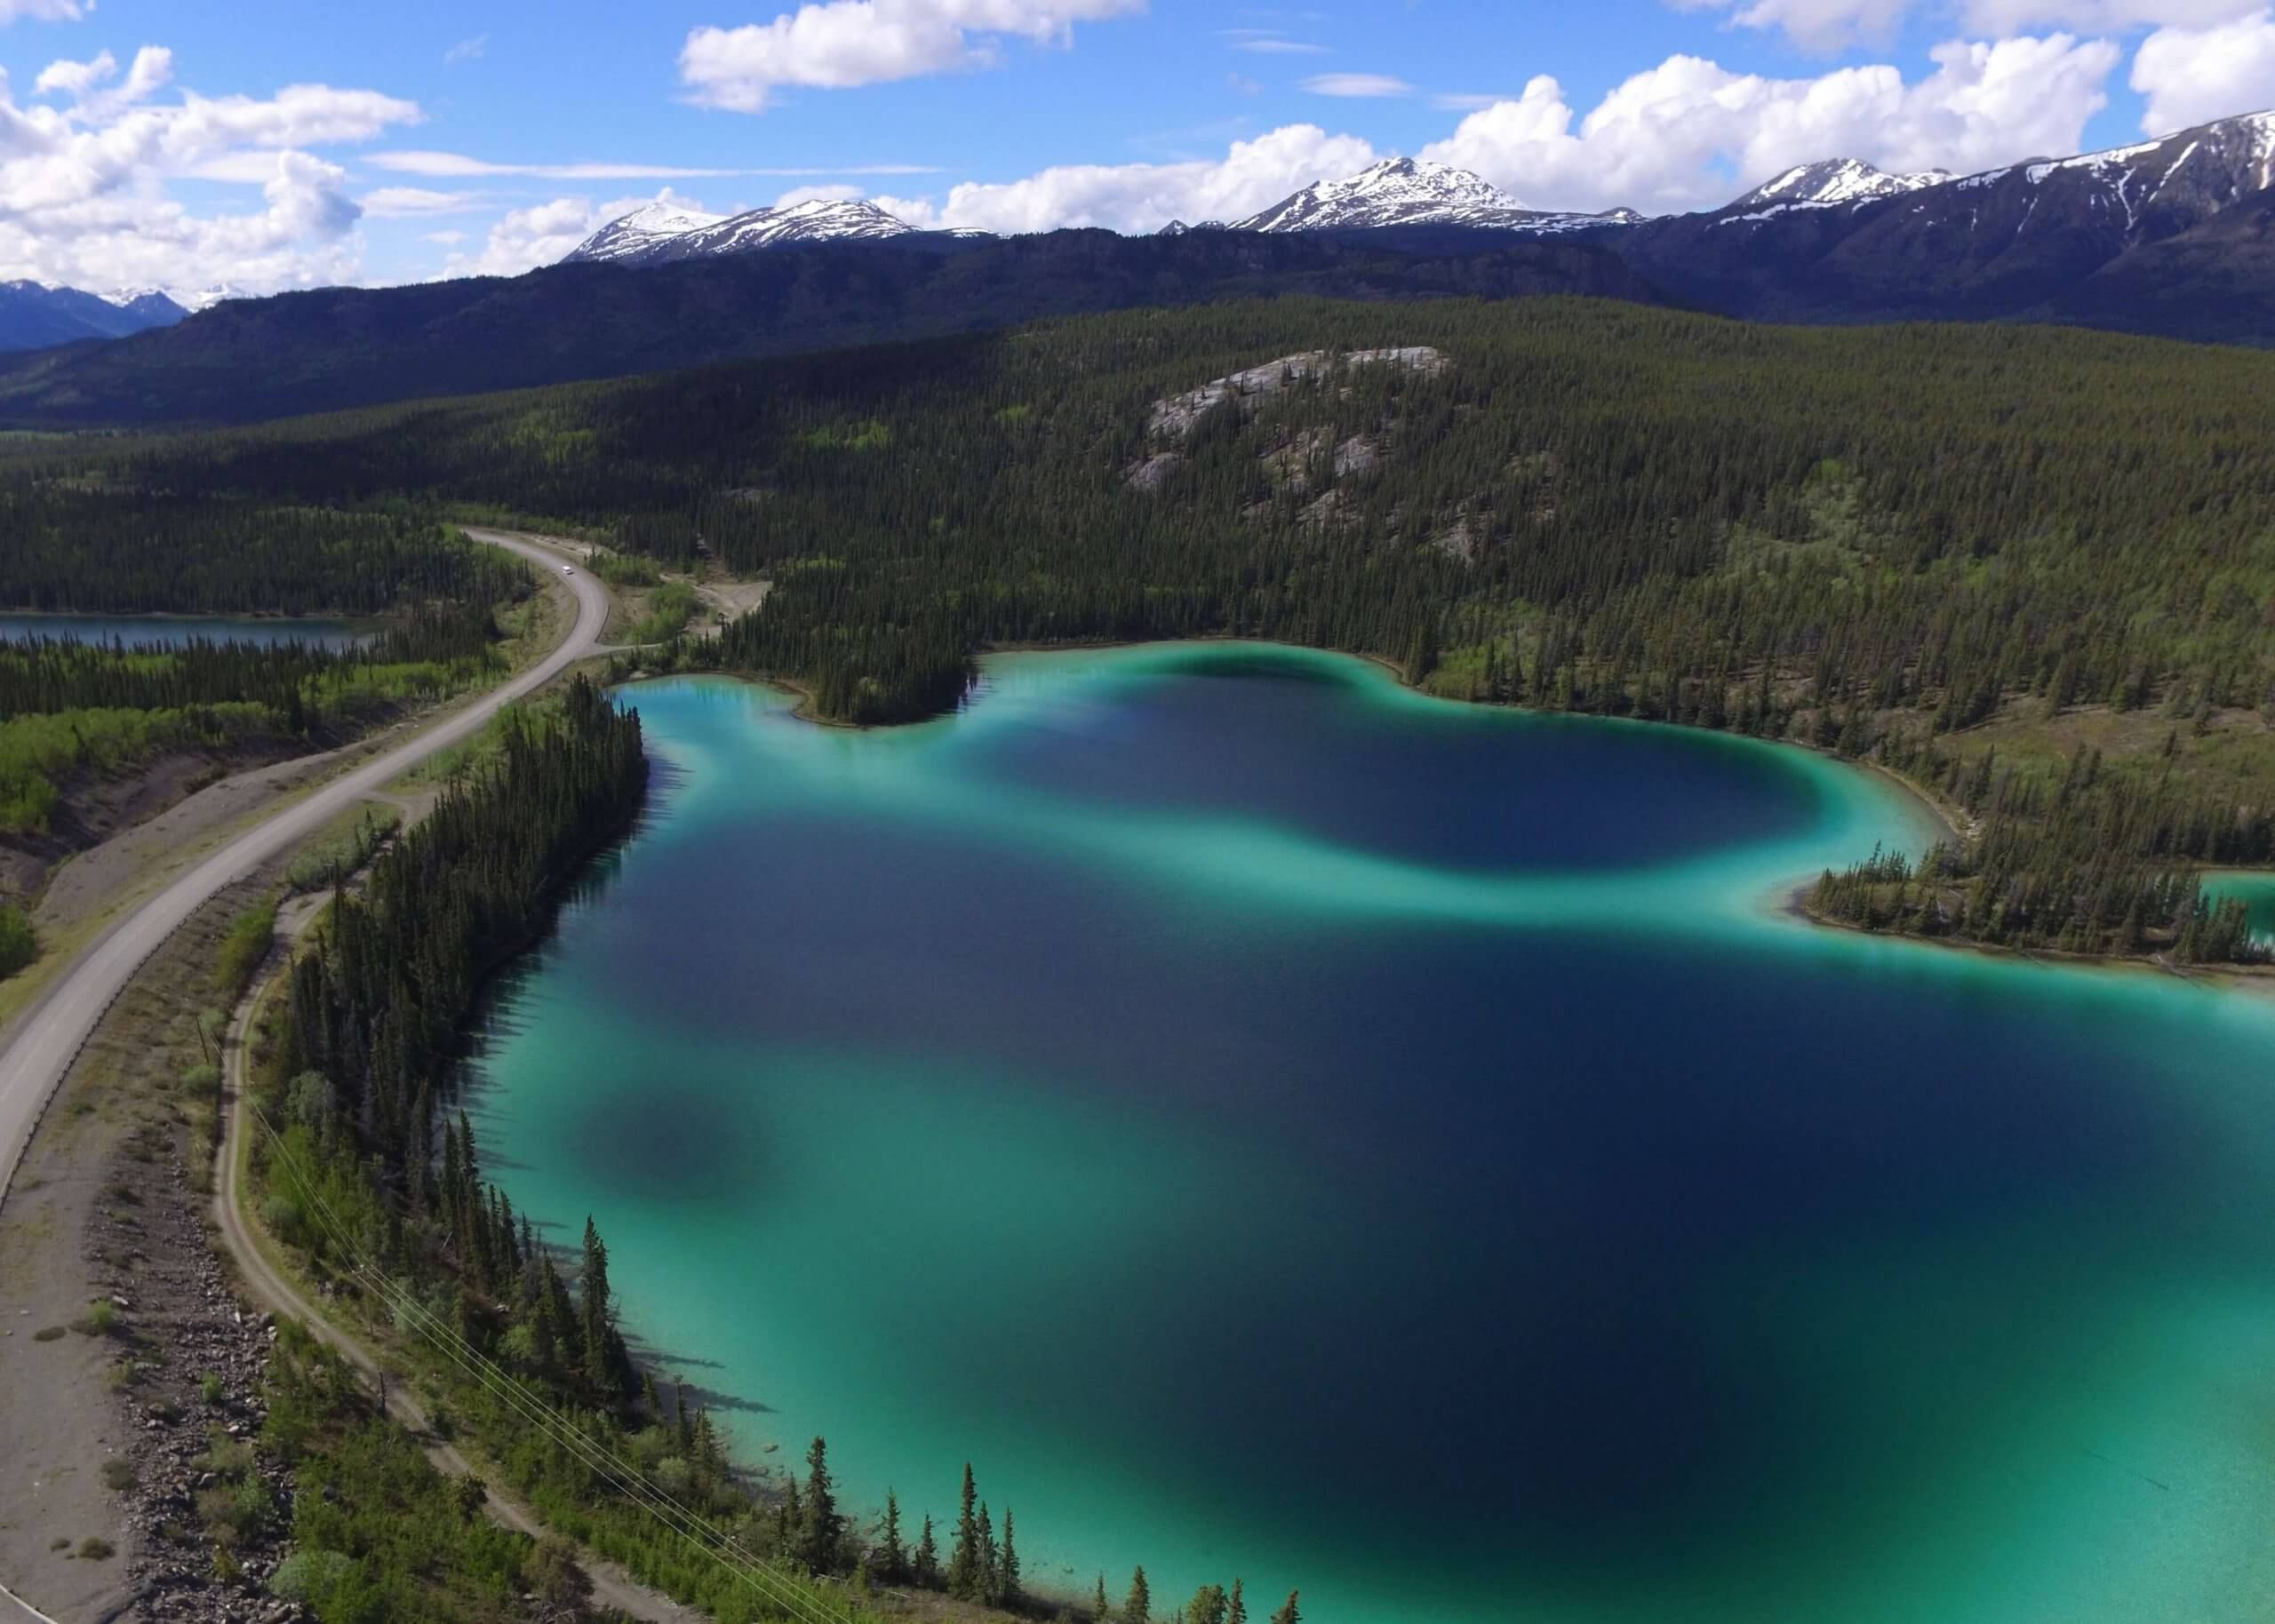 Aerial view of the highway, mountains, and blue and green waters of Emerald Lake, Yukon